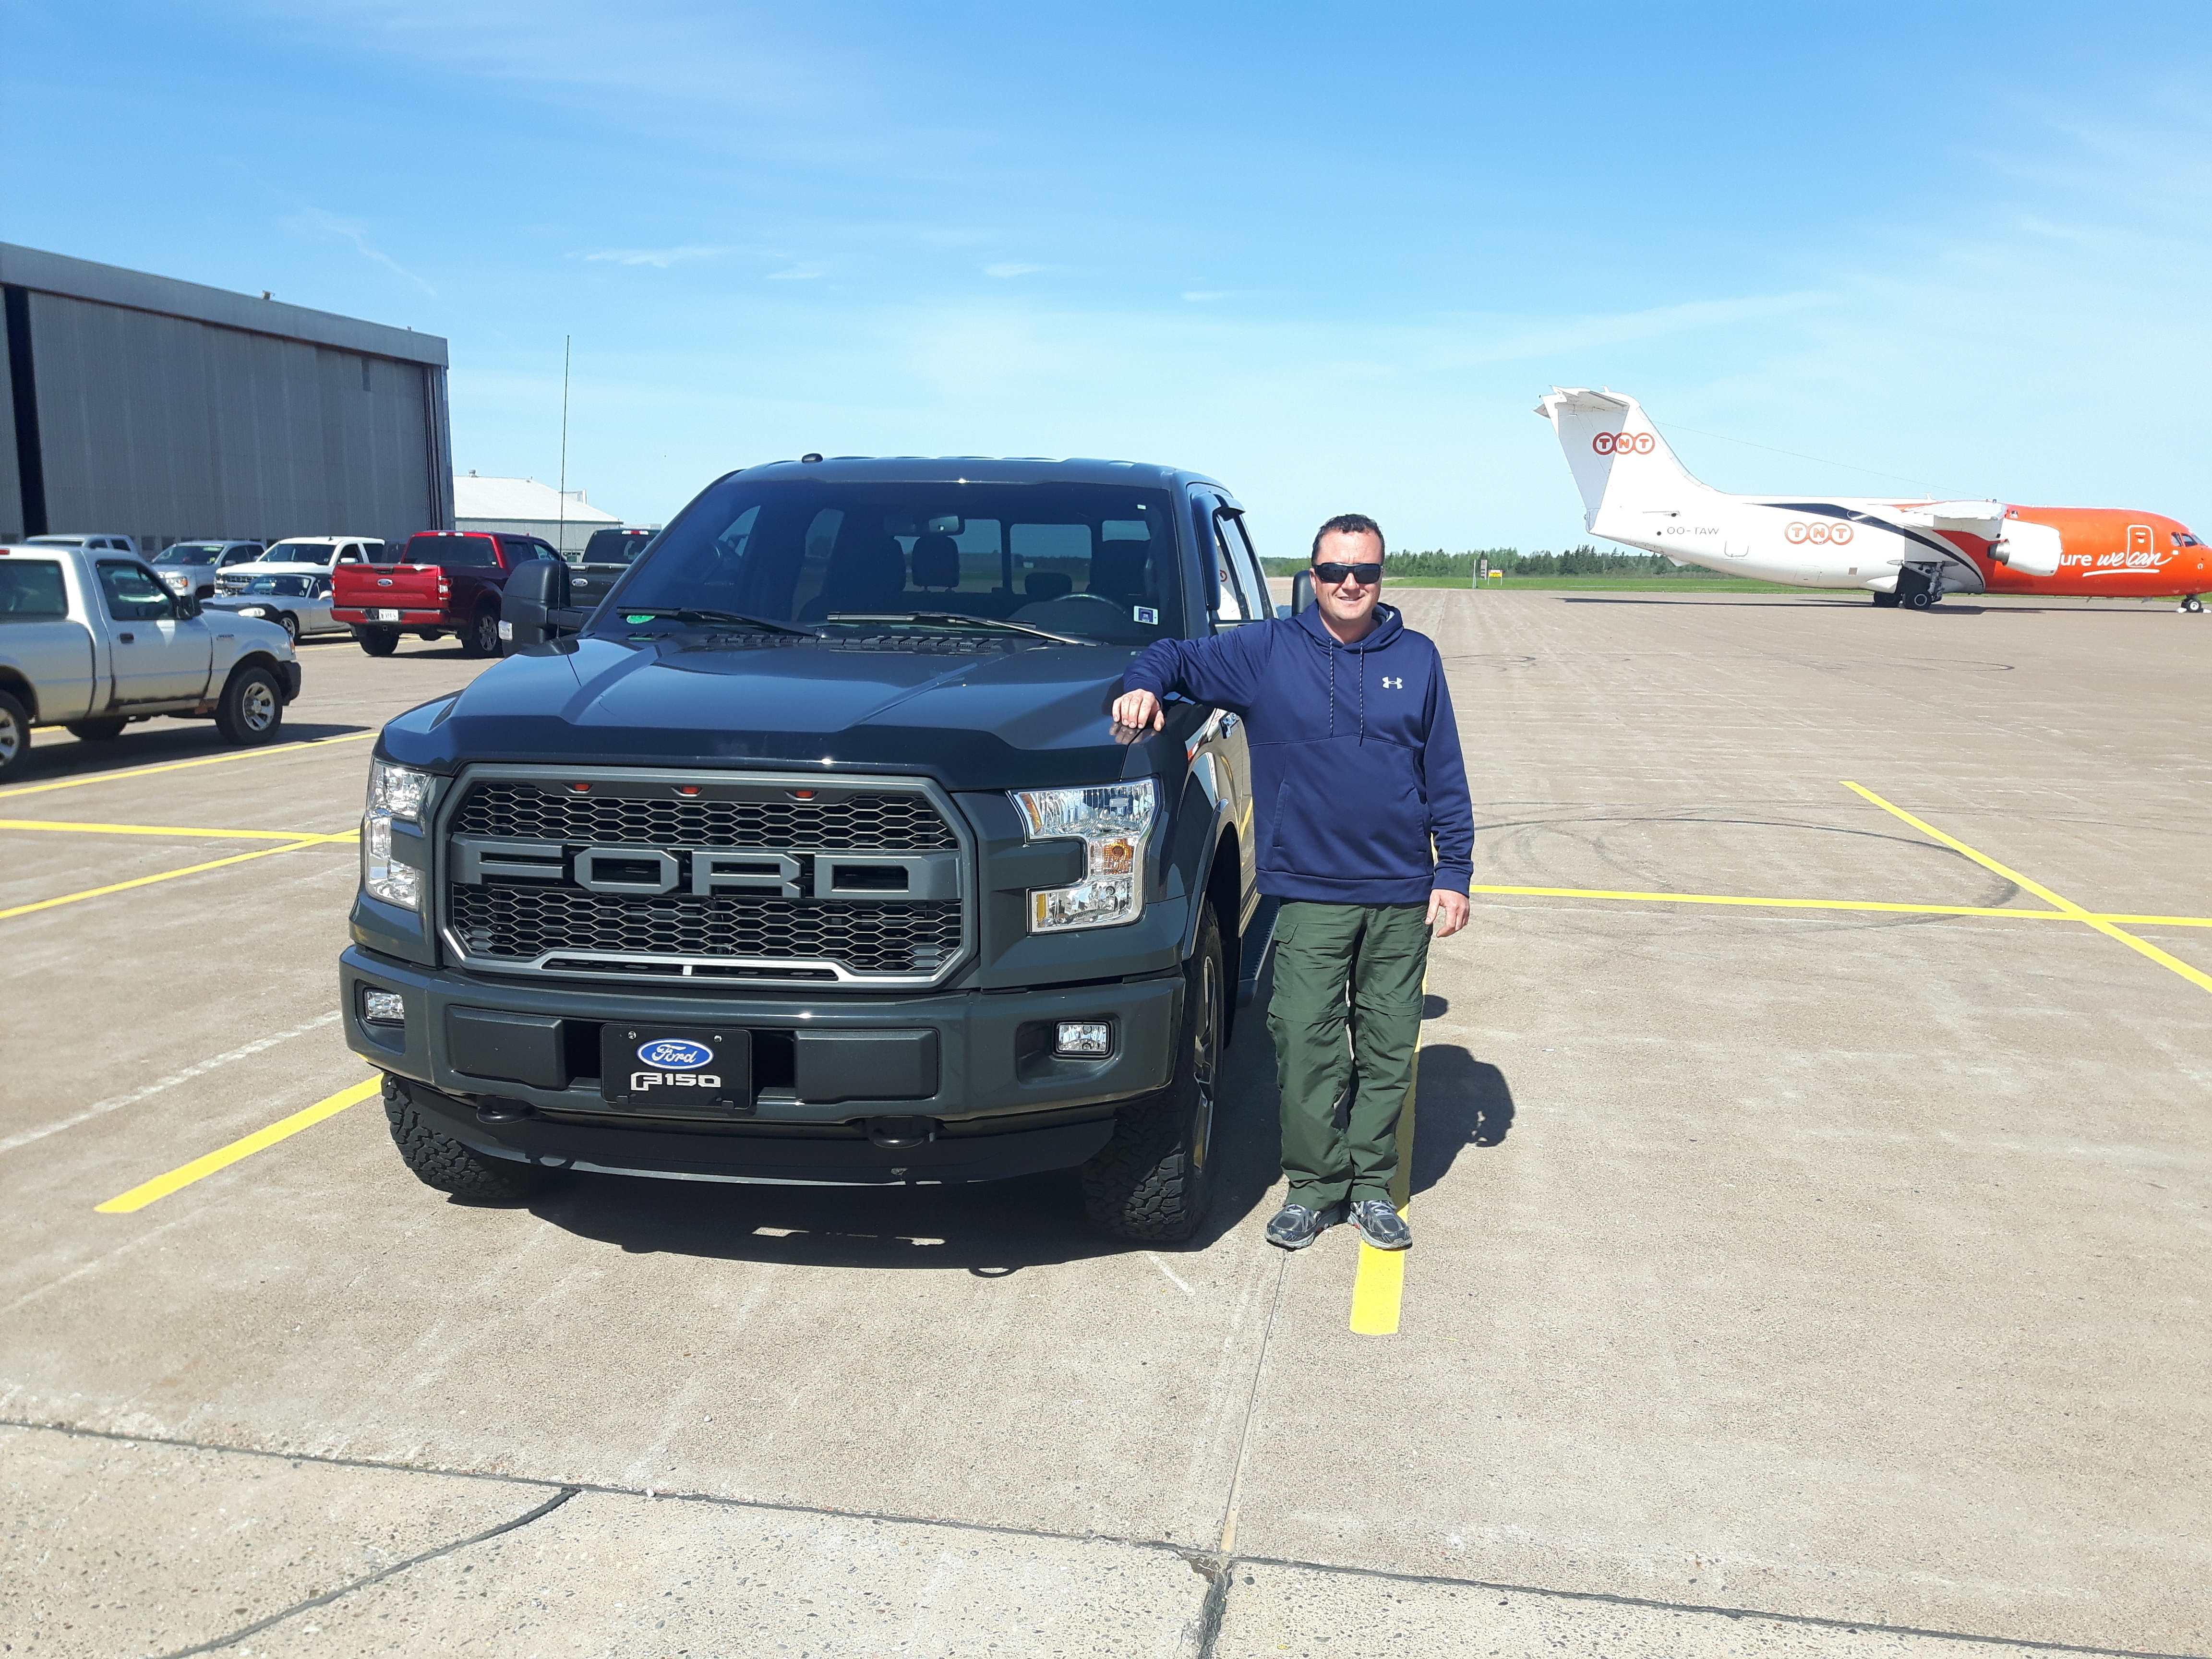 Shawn MacKendrick has spent about $1,000 to replace smashed driving lights and touch up some of the paint chips on his 2016 F-150 truck and he still has to get his cracked windshield replaced. He says it is 'littered with hundreds of little chips.' (Submitted by Shawn MacKendrick)